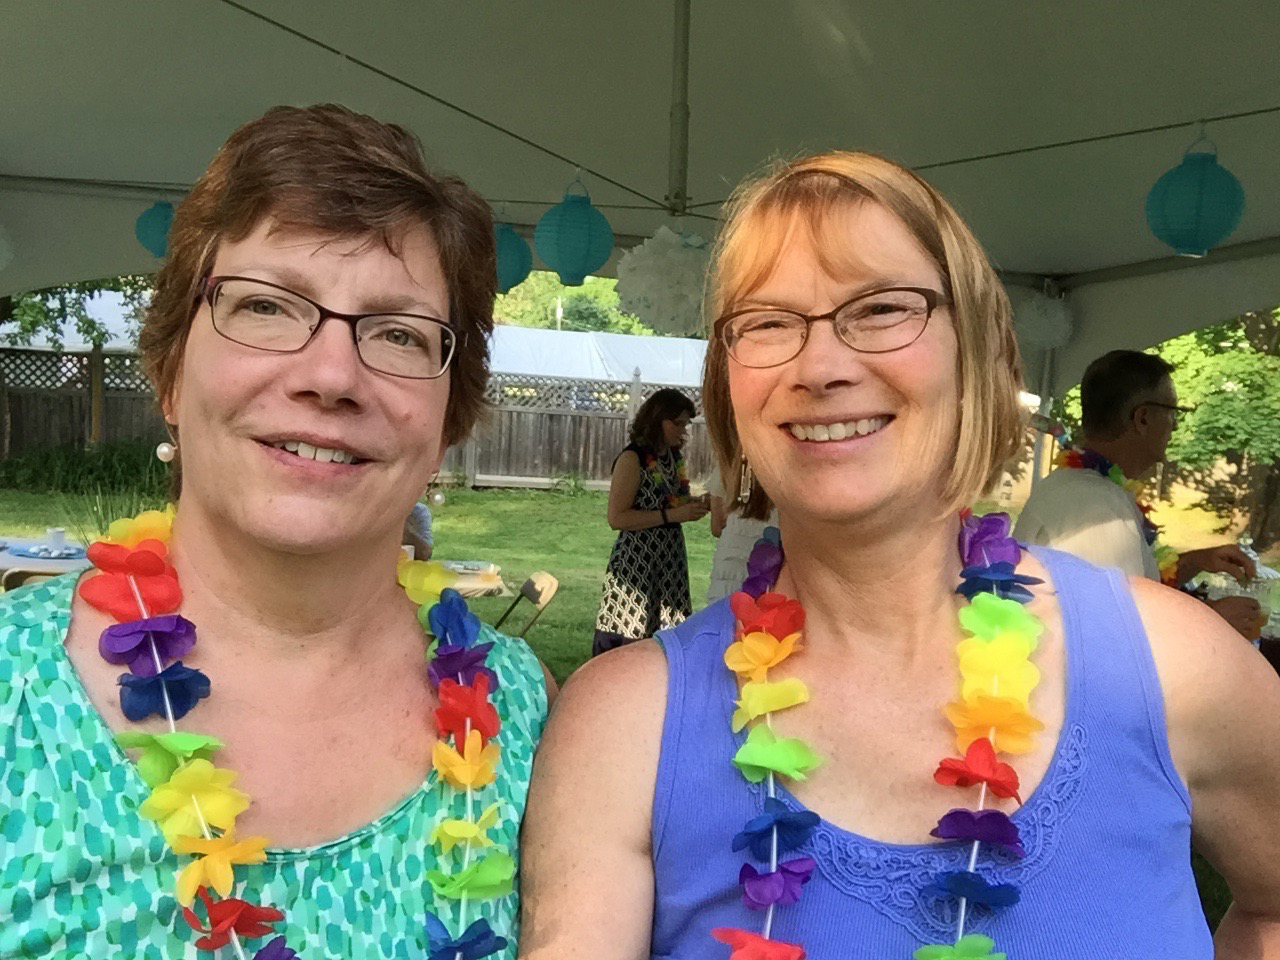 Virginia with her spouse, Kathy Simmonds.